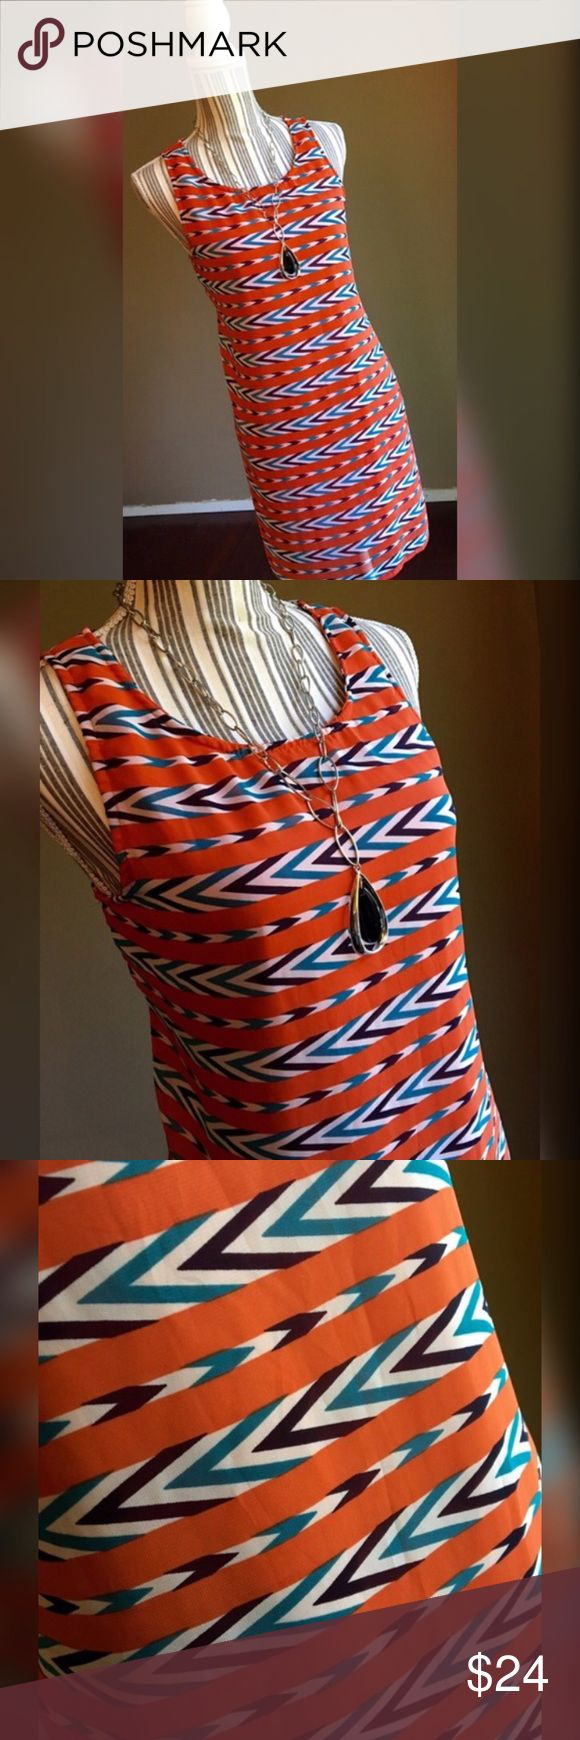 "Tea n Rose Dress Chevron Mod-Style Dress by Tea n Rose. Zips in the back. Orange, white, turquoise, black. Bust 40"". Length 33.5"". Info tag is missing but this dress fits a Large. Tea n Rose Dresses"